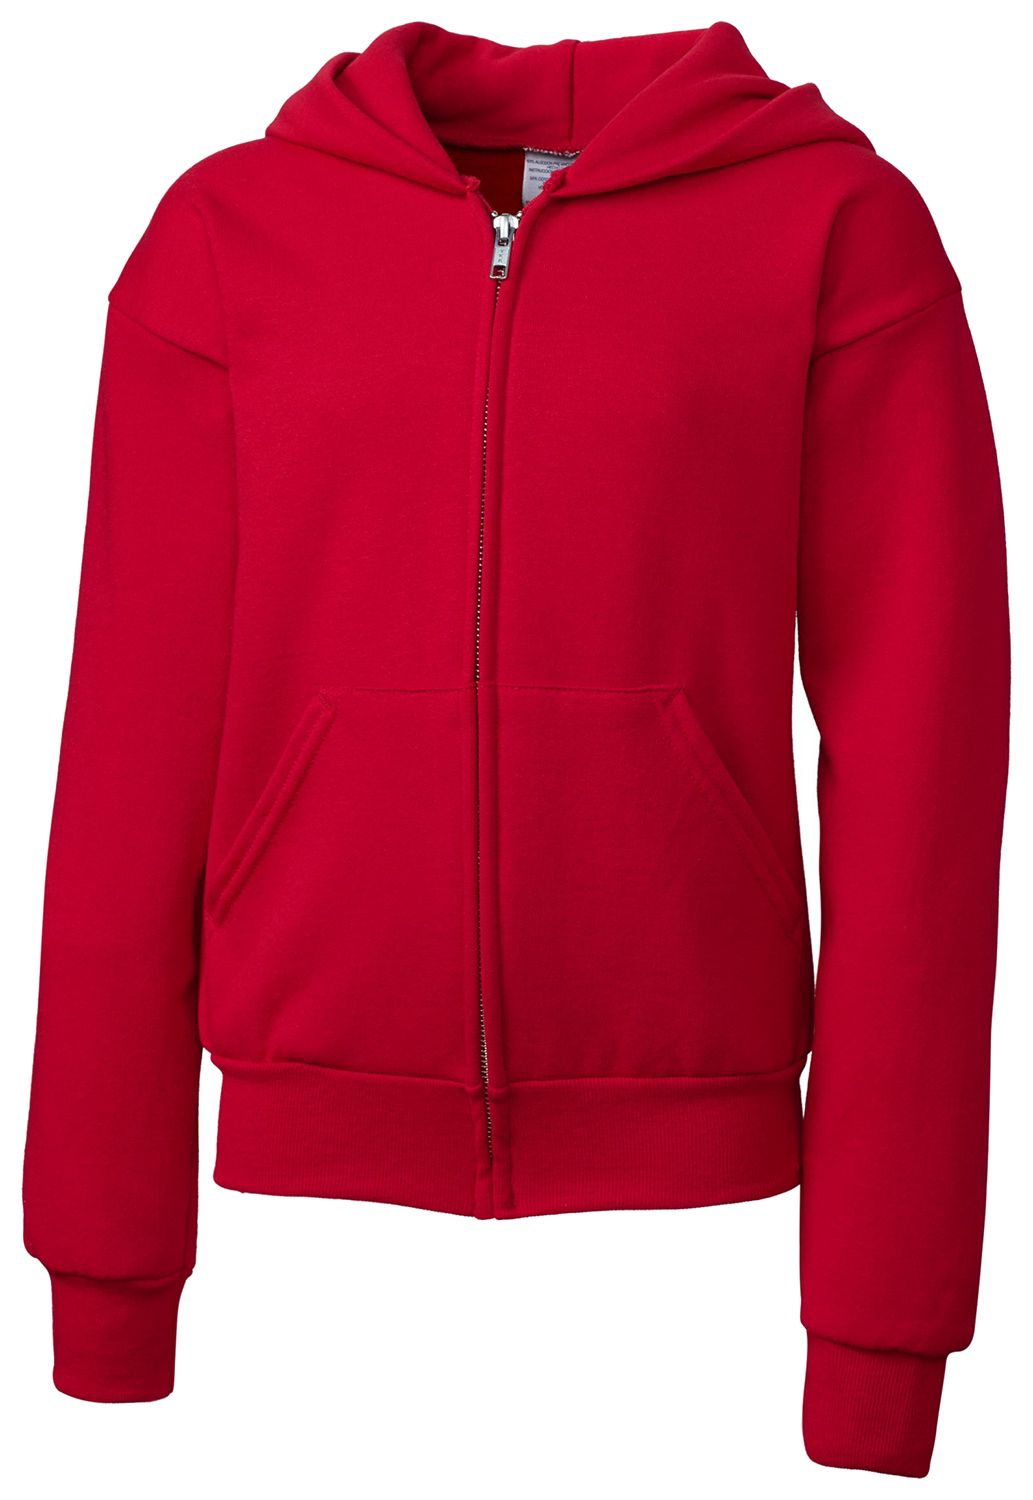 Clique Basics YRK03001 Girl's Full Zip Comfortable Mid-Weight Warm Hoodie